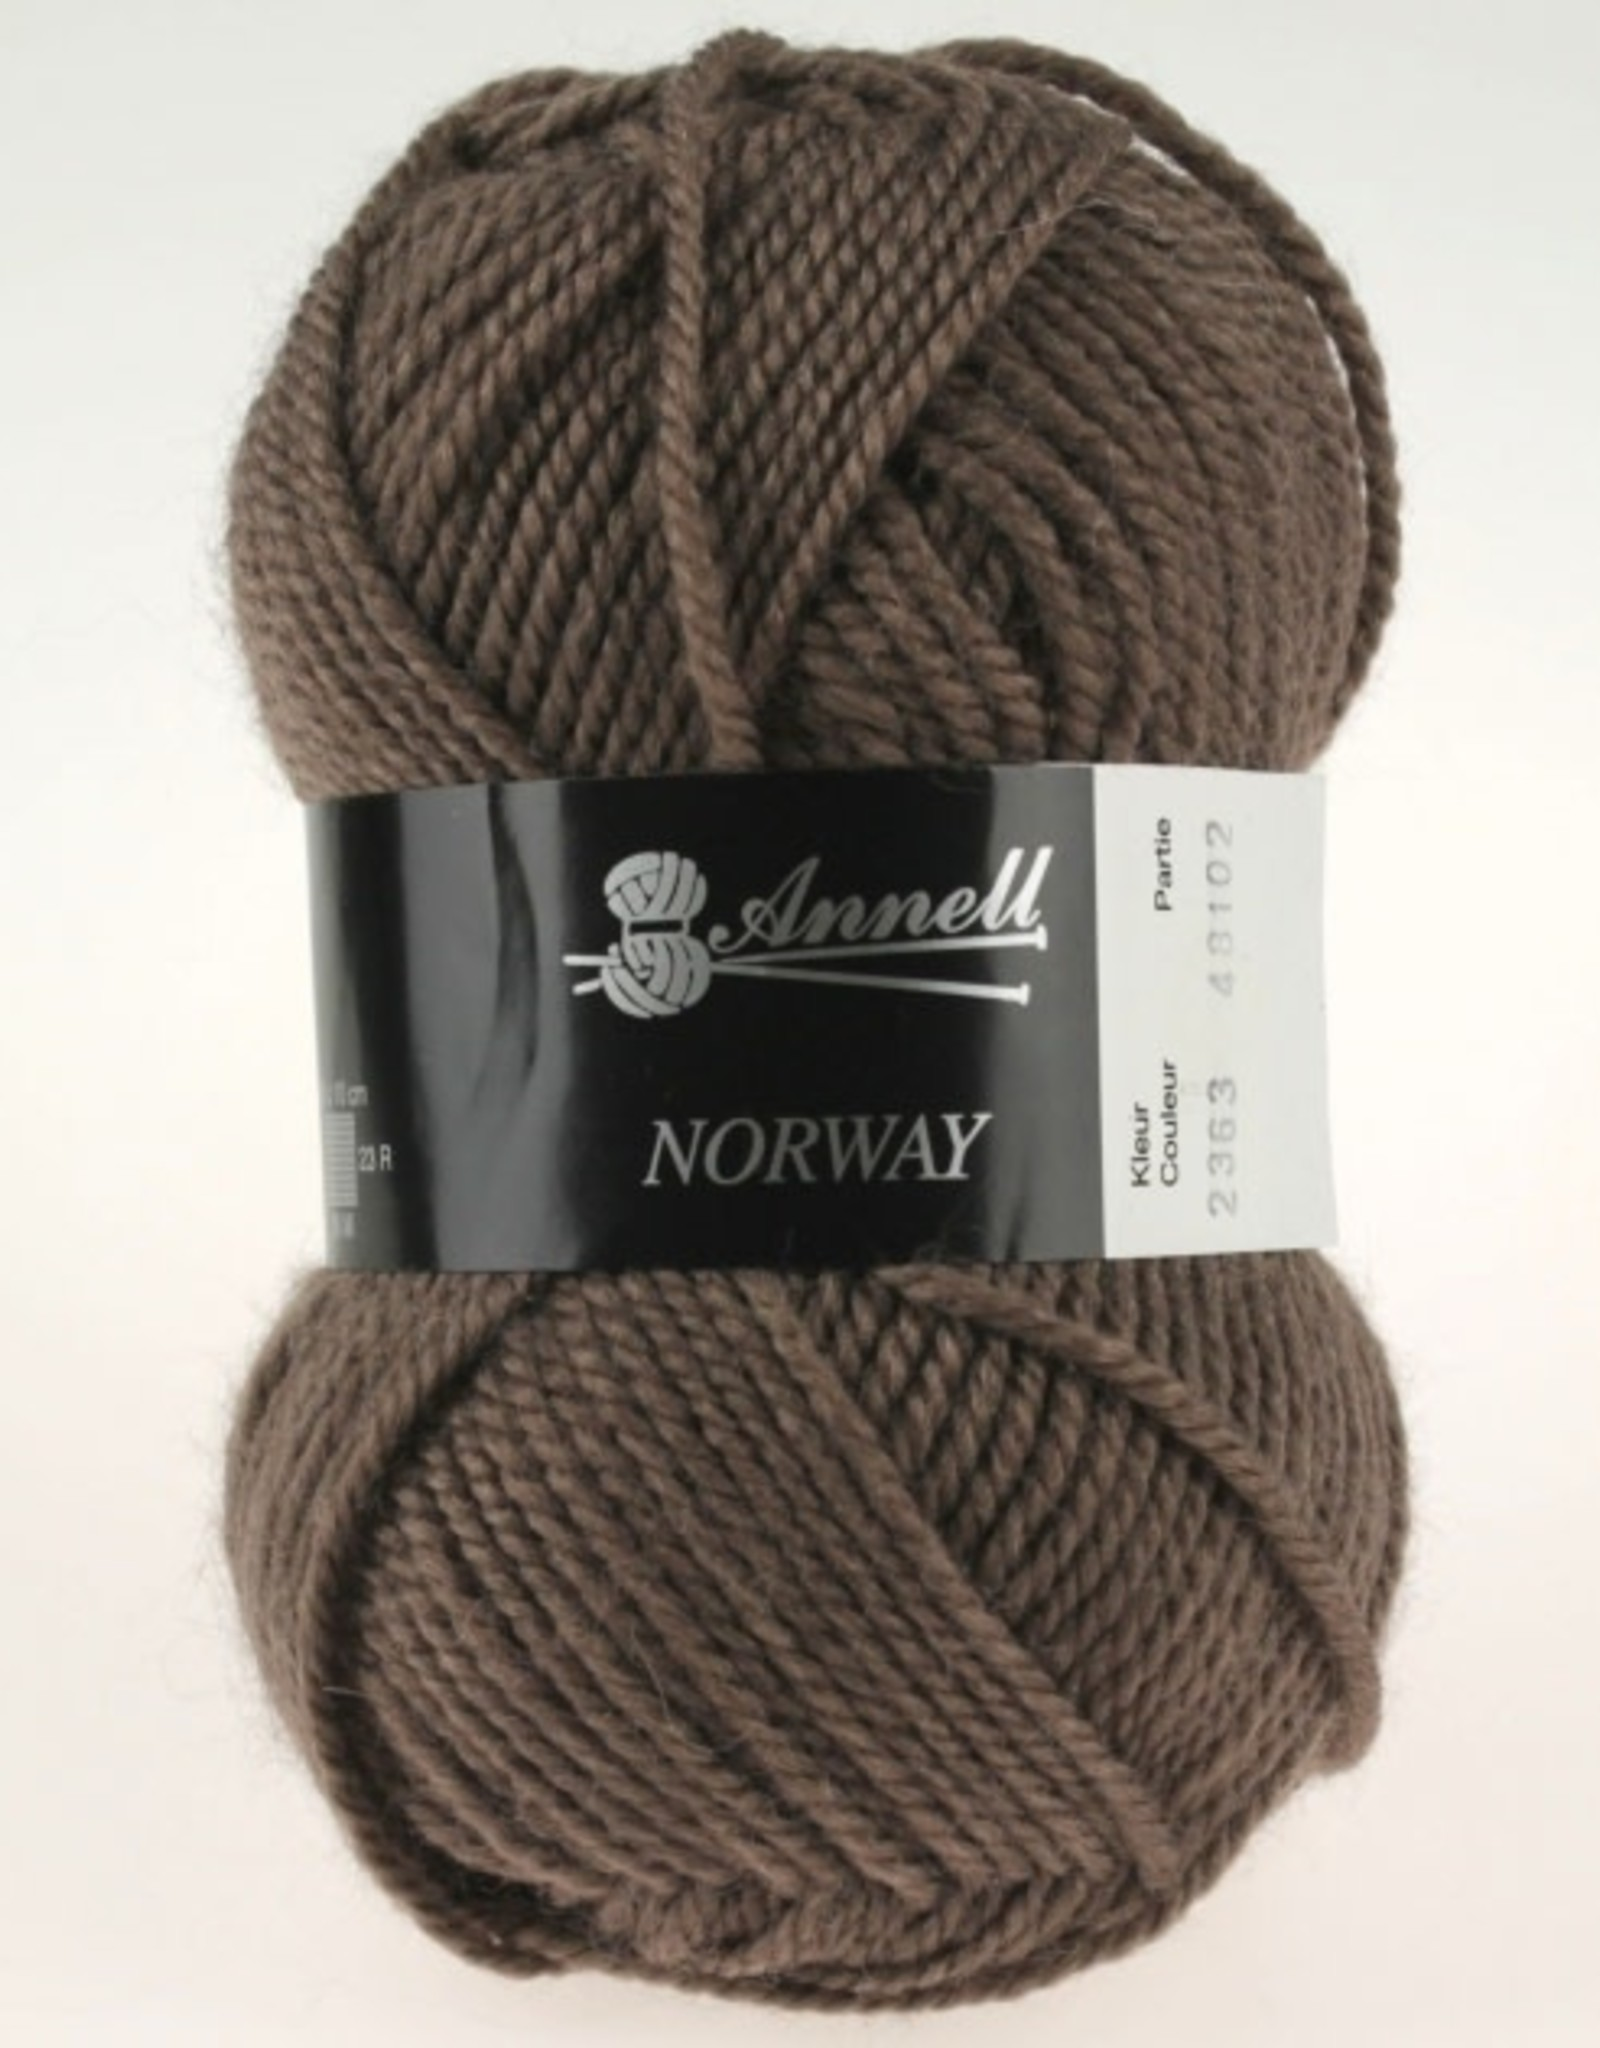 Annell Annell Norway 2363